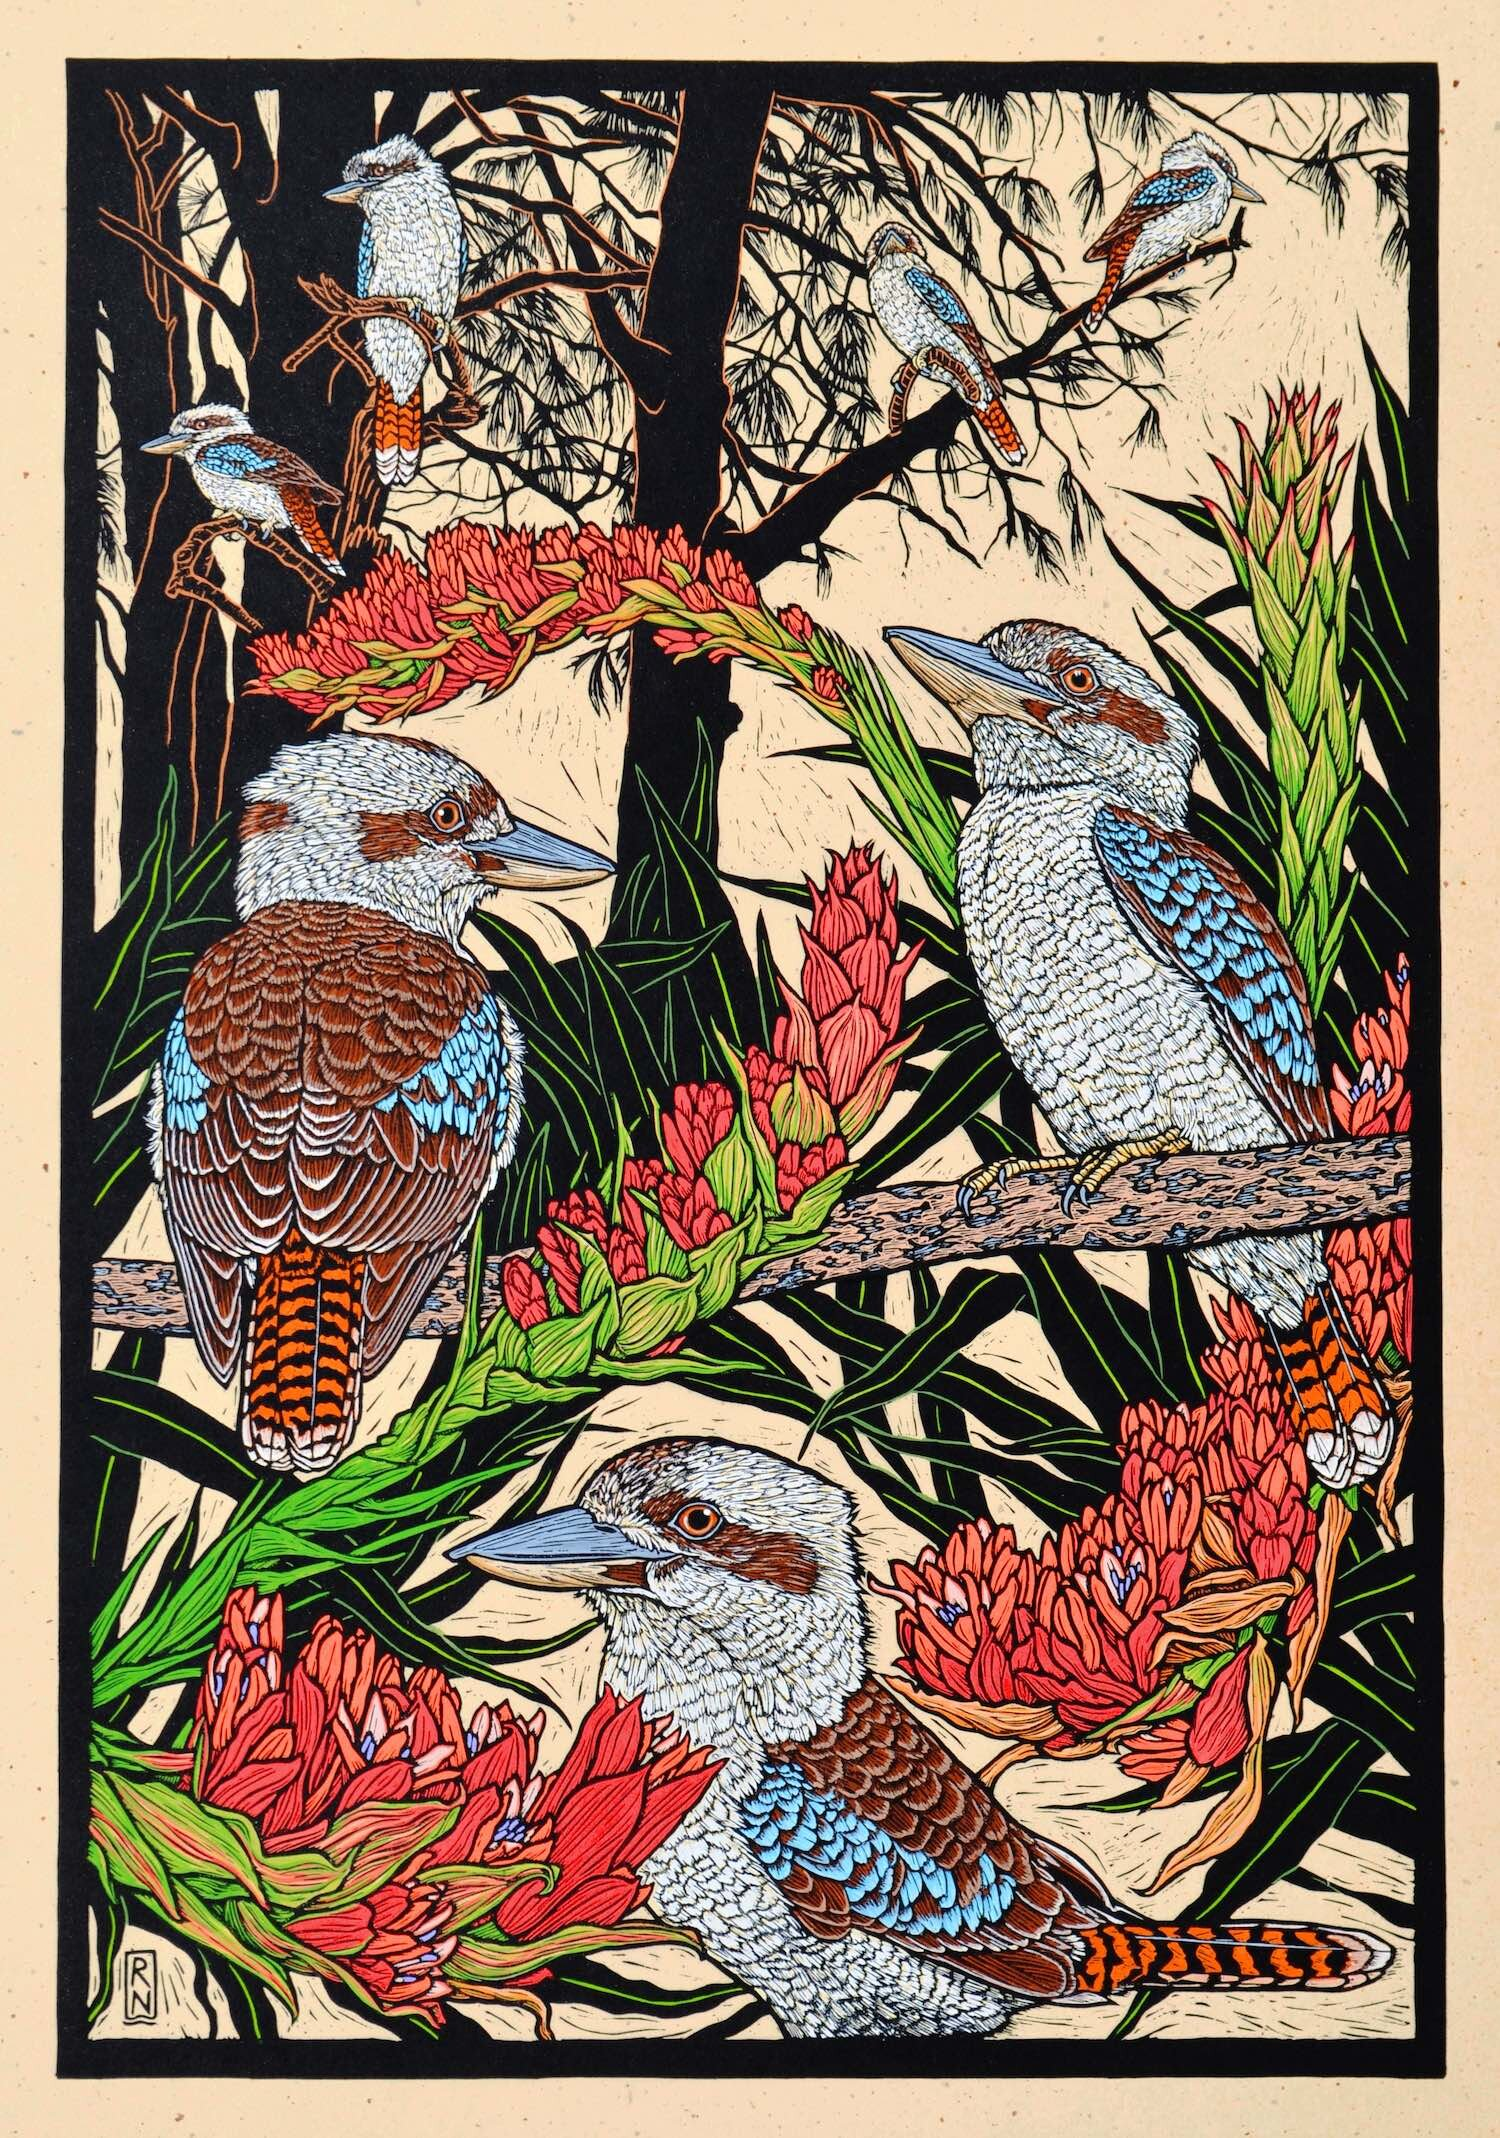 Kookaburra and Giant spear lily  75 x 51.5 cm, edition of 50  hand-coloured linocut on handmade japanese paper  $1,700